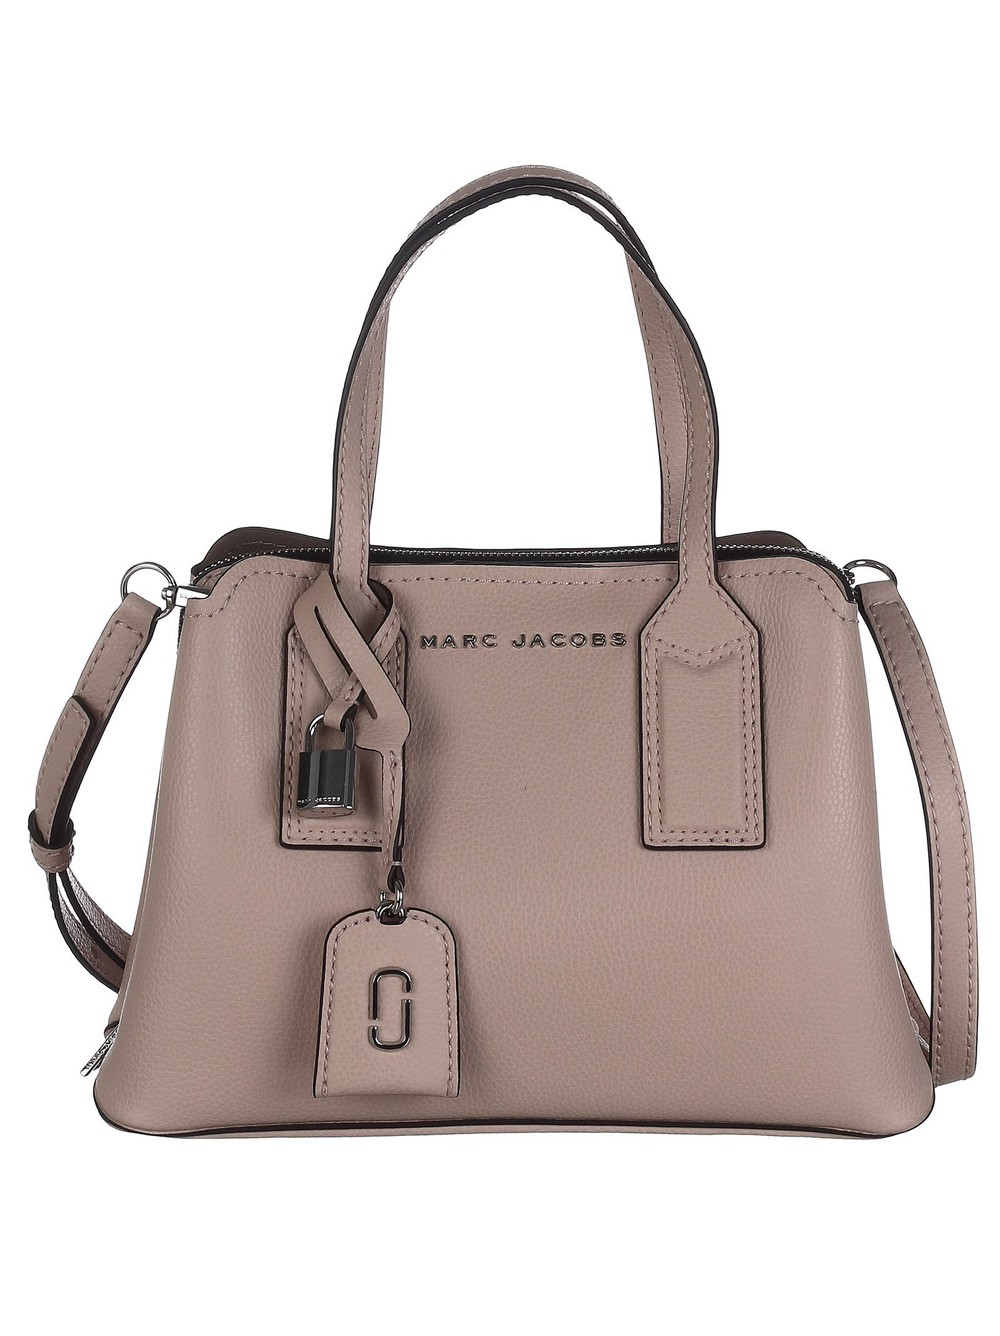 Marc Jacobs Hanging Tag Tote in pink